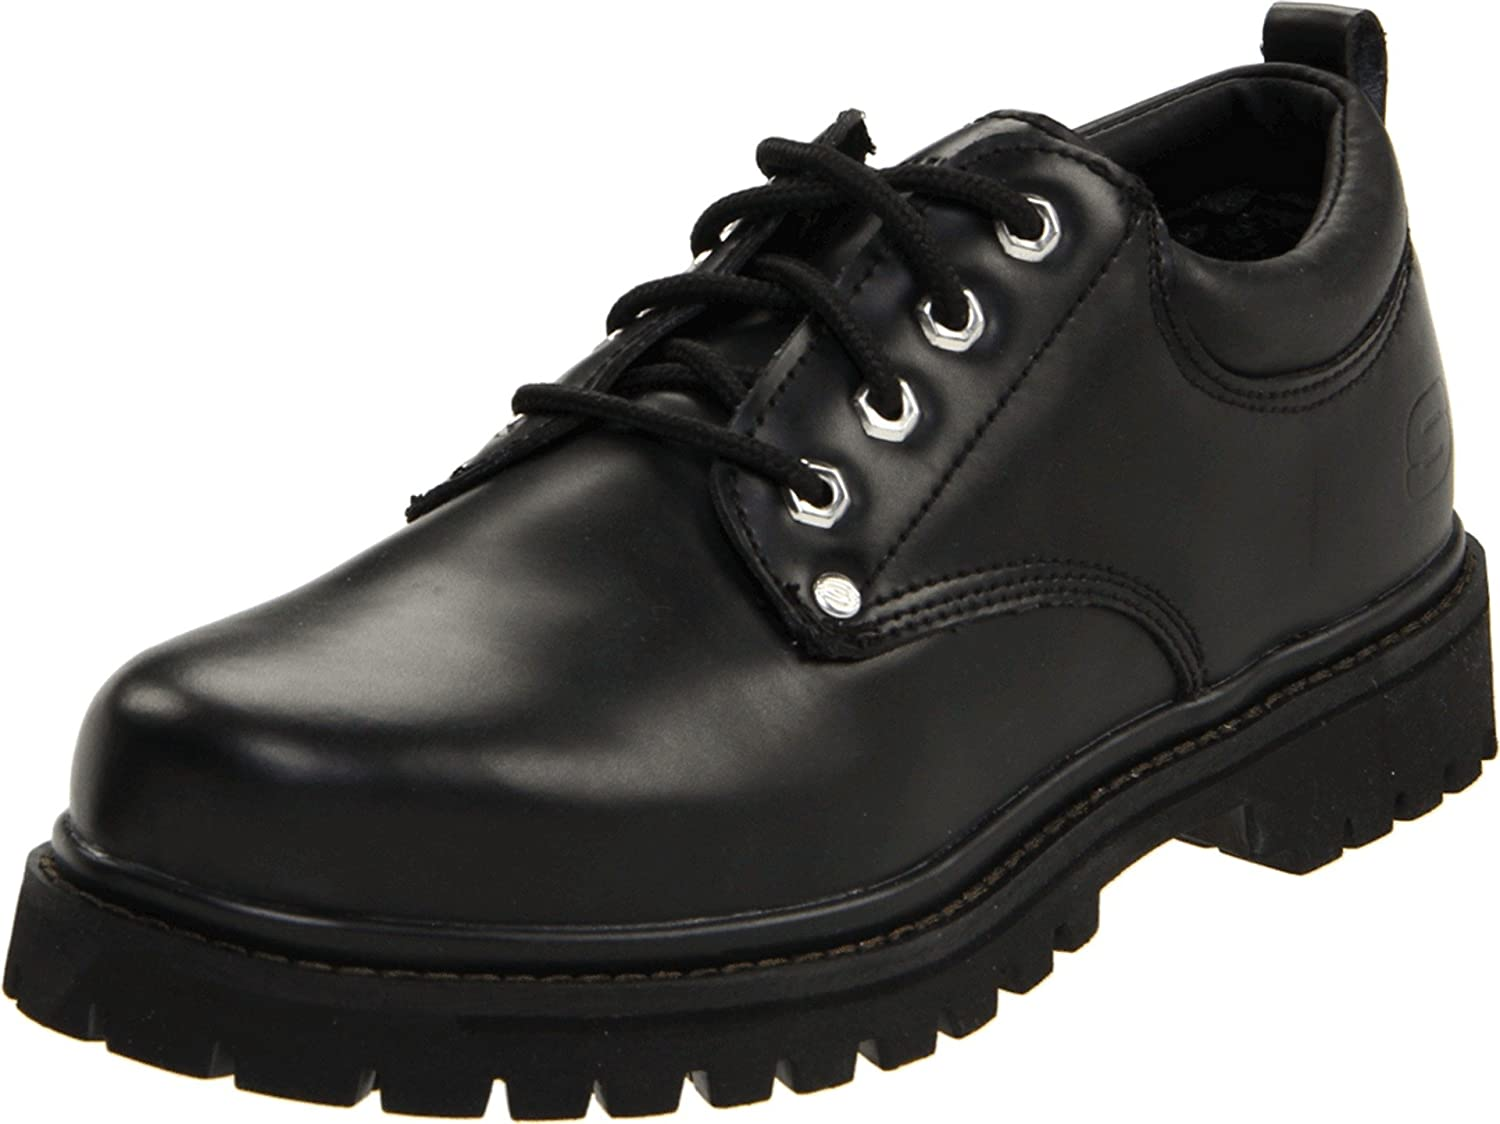 Skechers Men's Alley Cat Utility Shoe